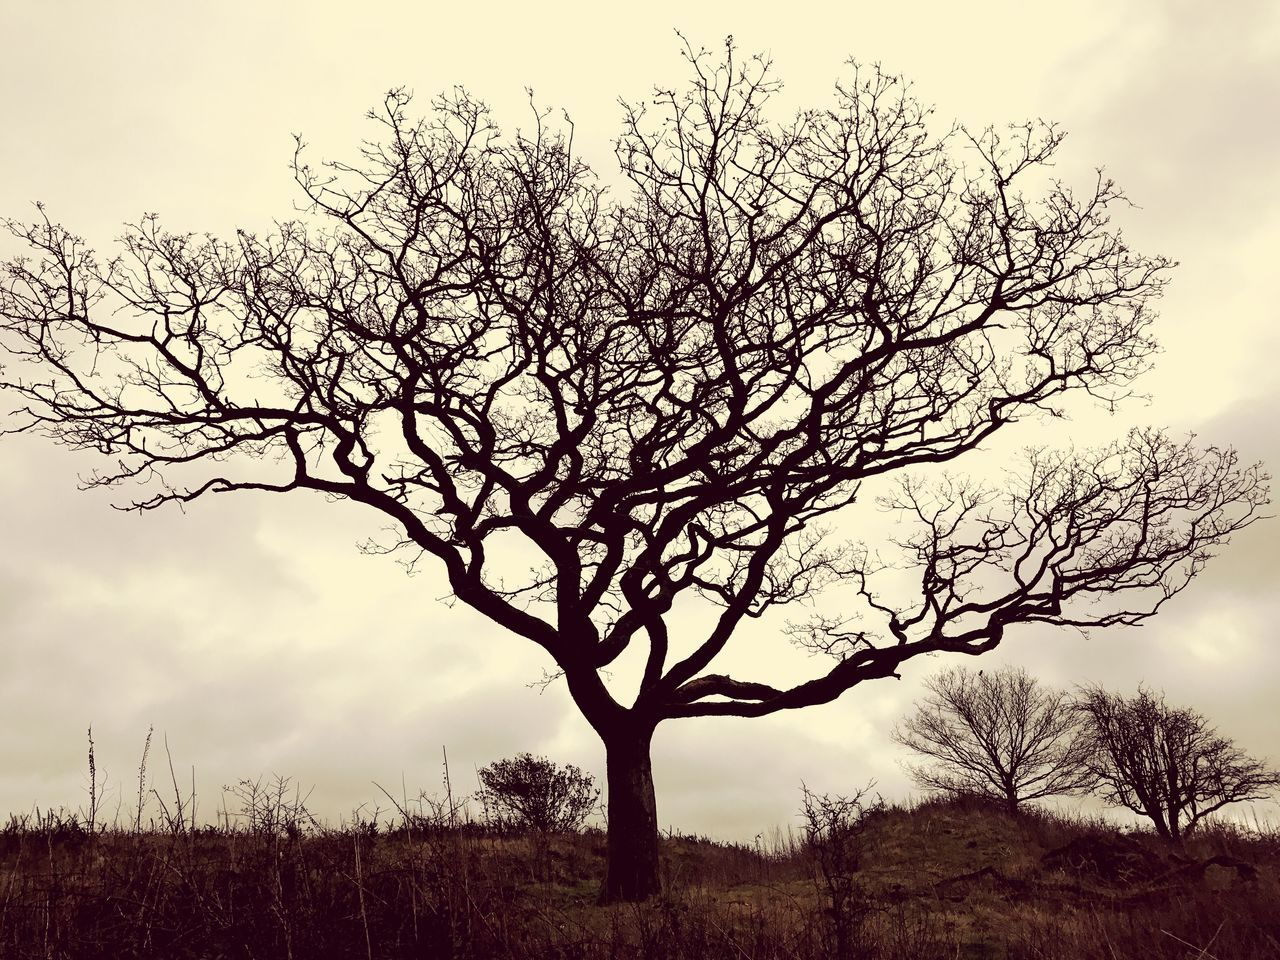 The lonely tree Nature Tree Tranquility Landscape Bare Tree Beauty In Nature No People Branch Tranquil Scene Sky Lone Outdoors Growth Scenics Isolated Day